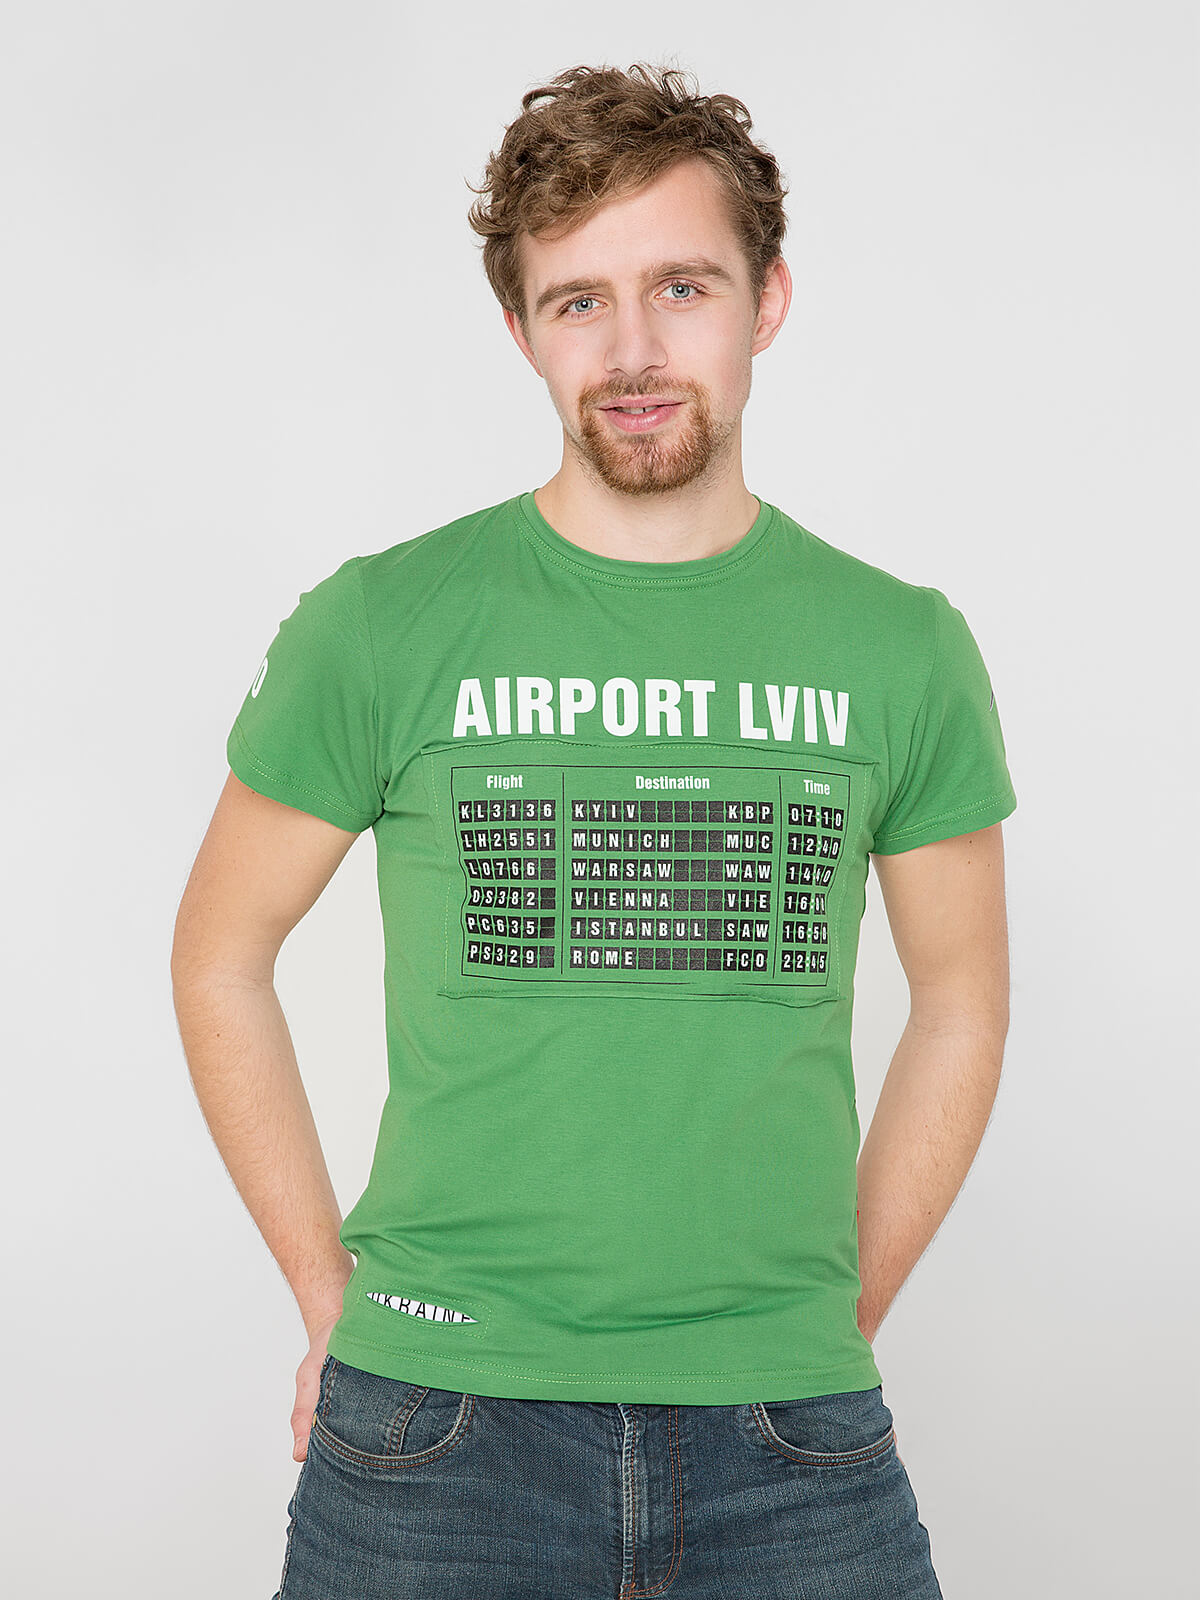 Men's T-Shirt Airport Lviv. Color green. Material: 95% cotton, 5% spandex.